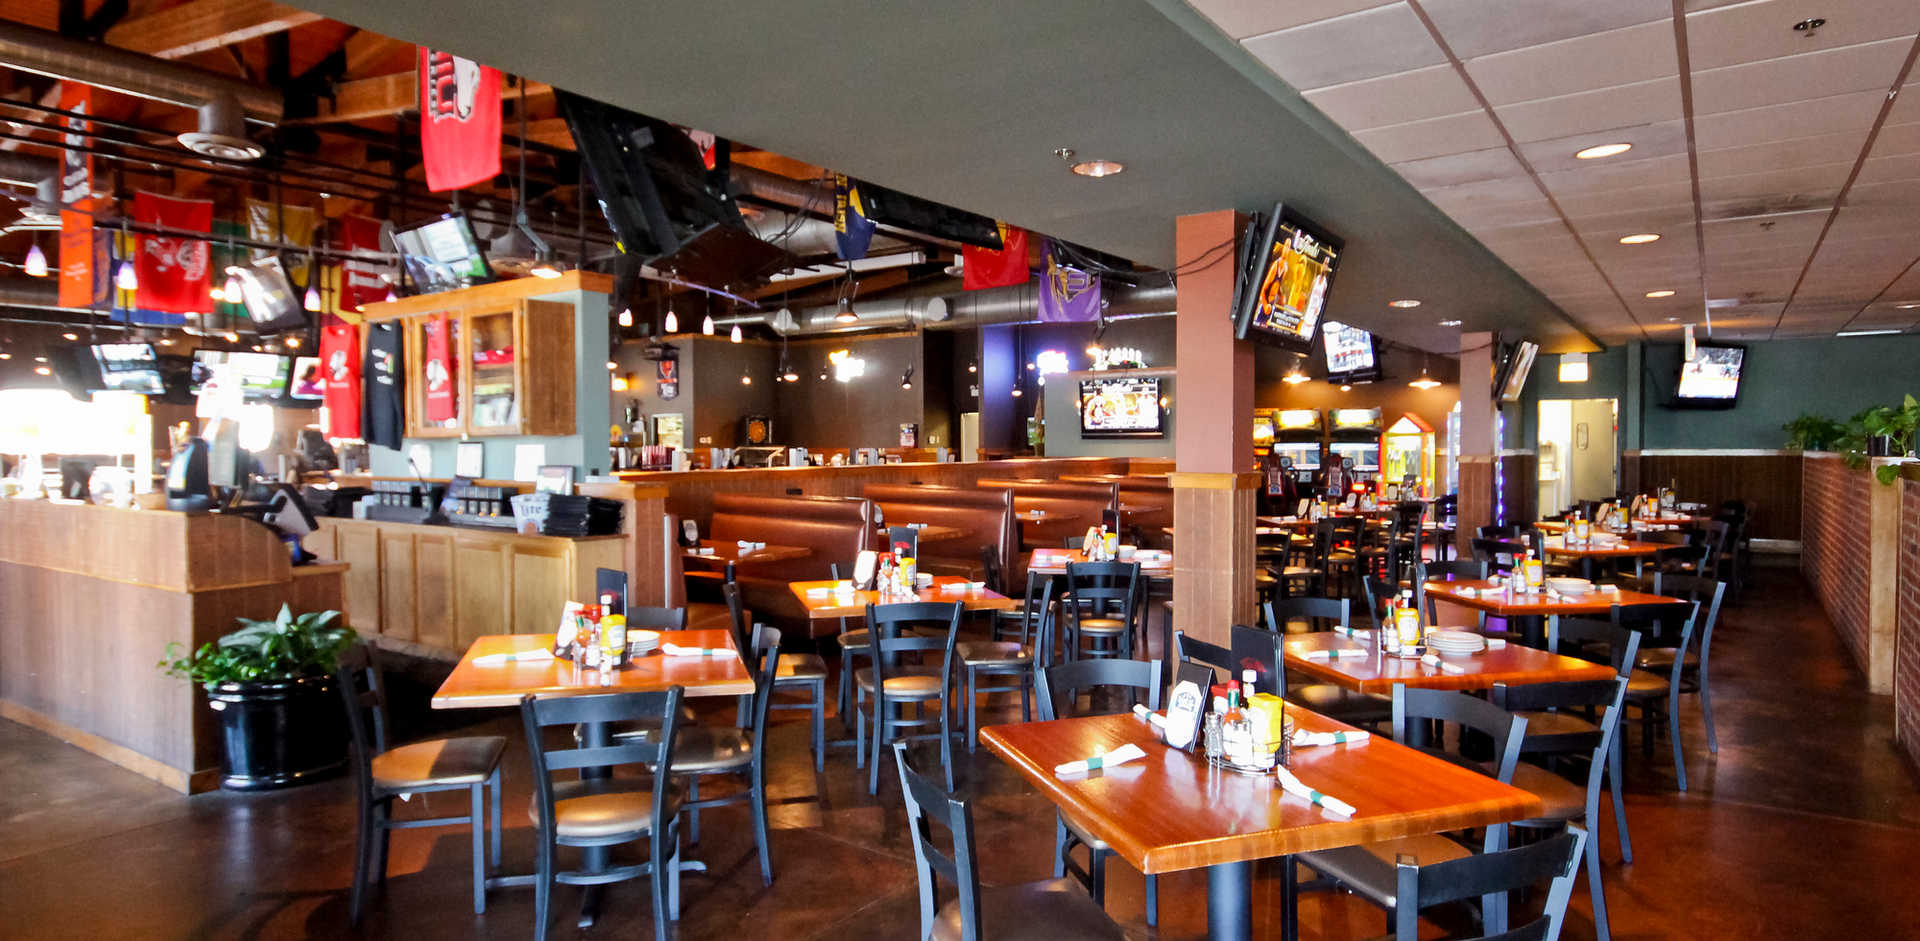 Real Time Sports Bar and Grill Dining Room view 5